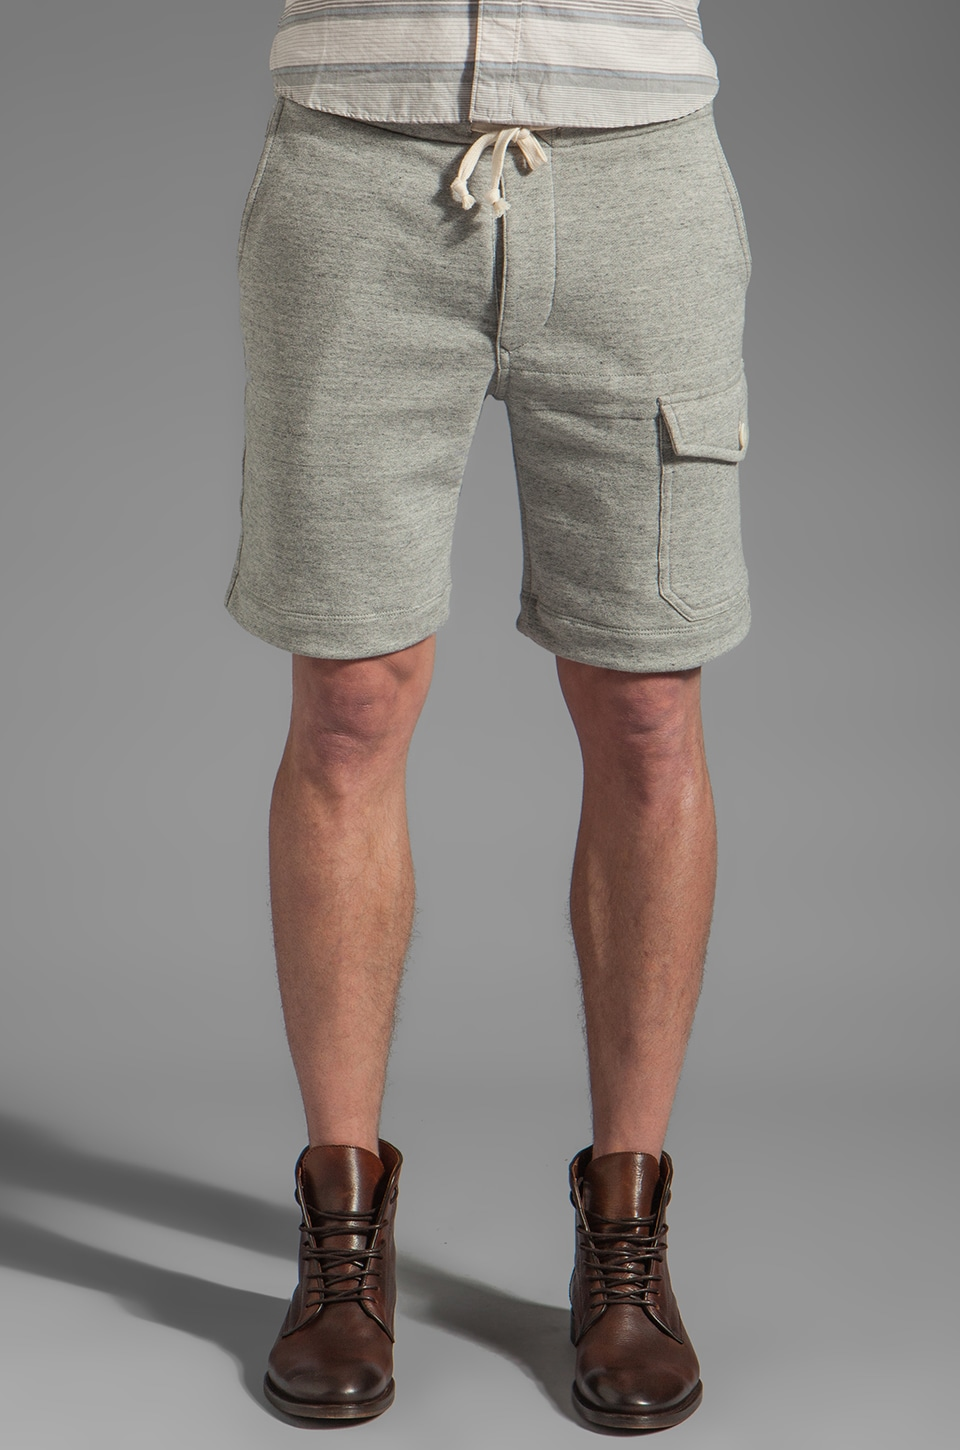 TODD SNYDER Knit Short in Grey Heather